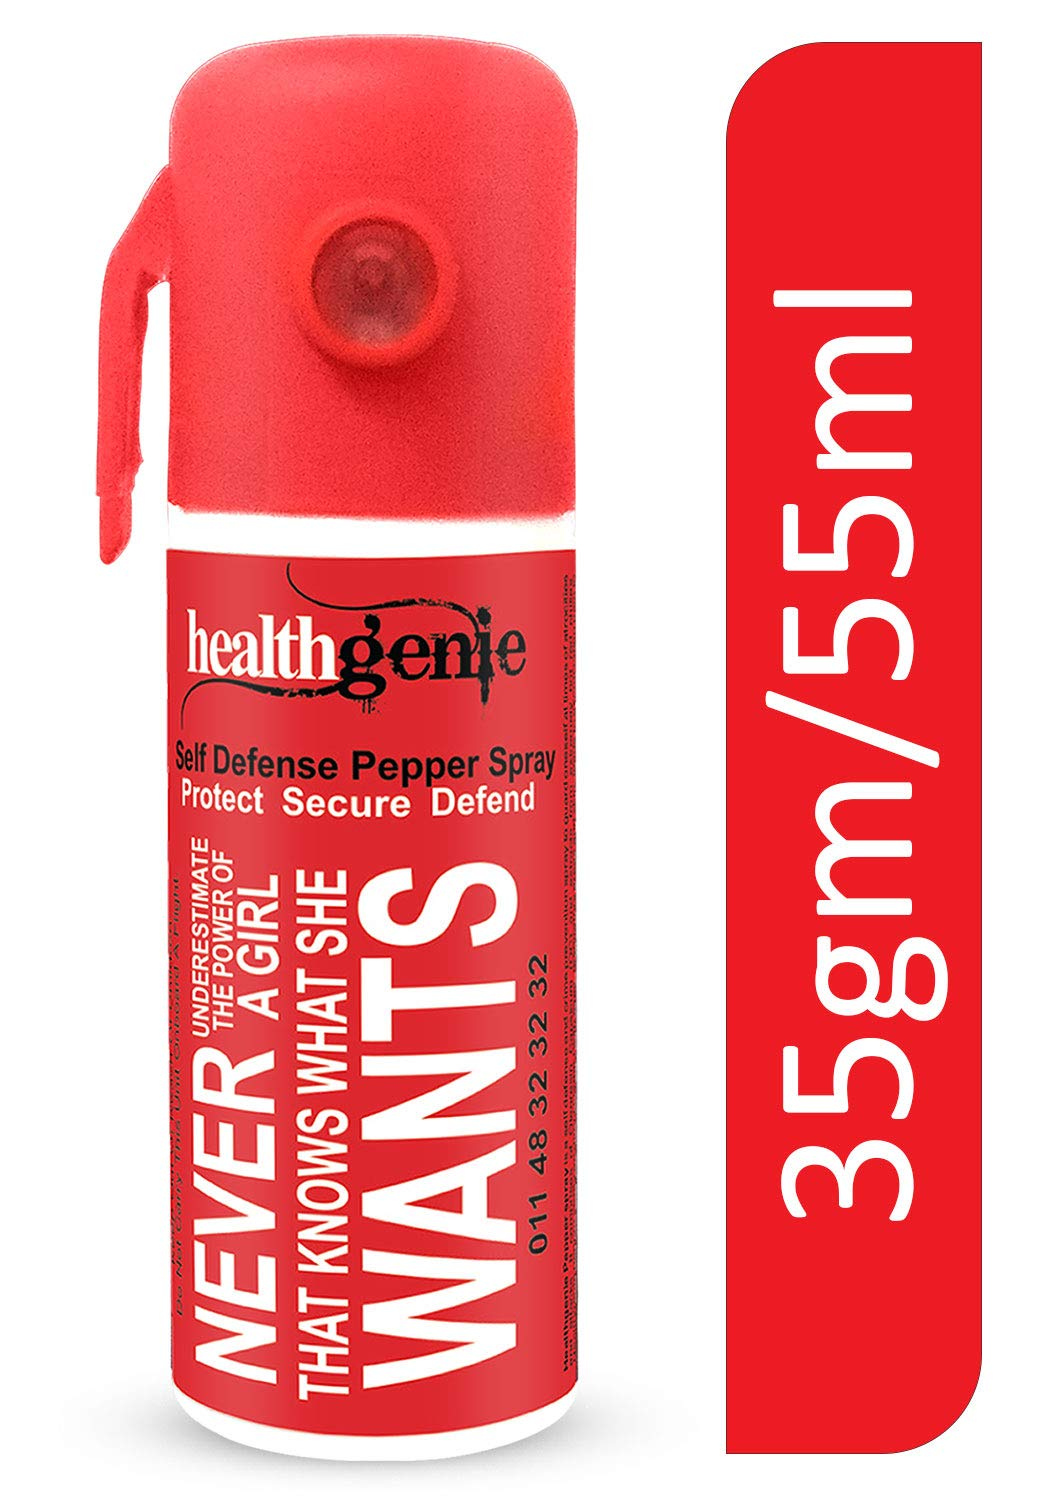 Healthgenie Self Defense Pepper Spray for Woman Safety - 35gm / 55 ml product image